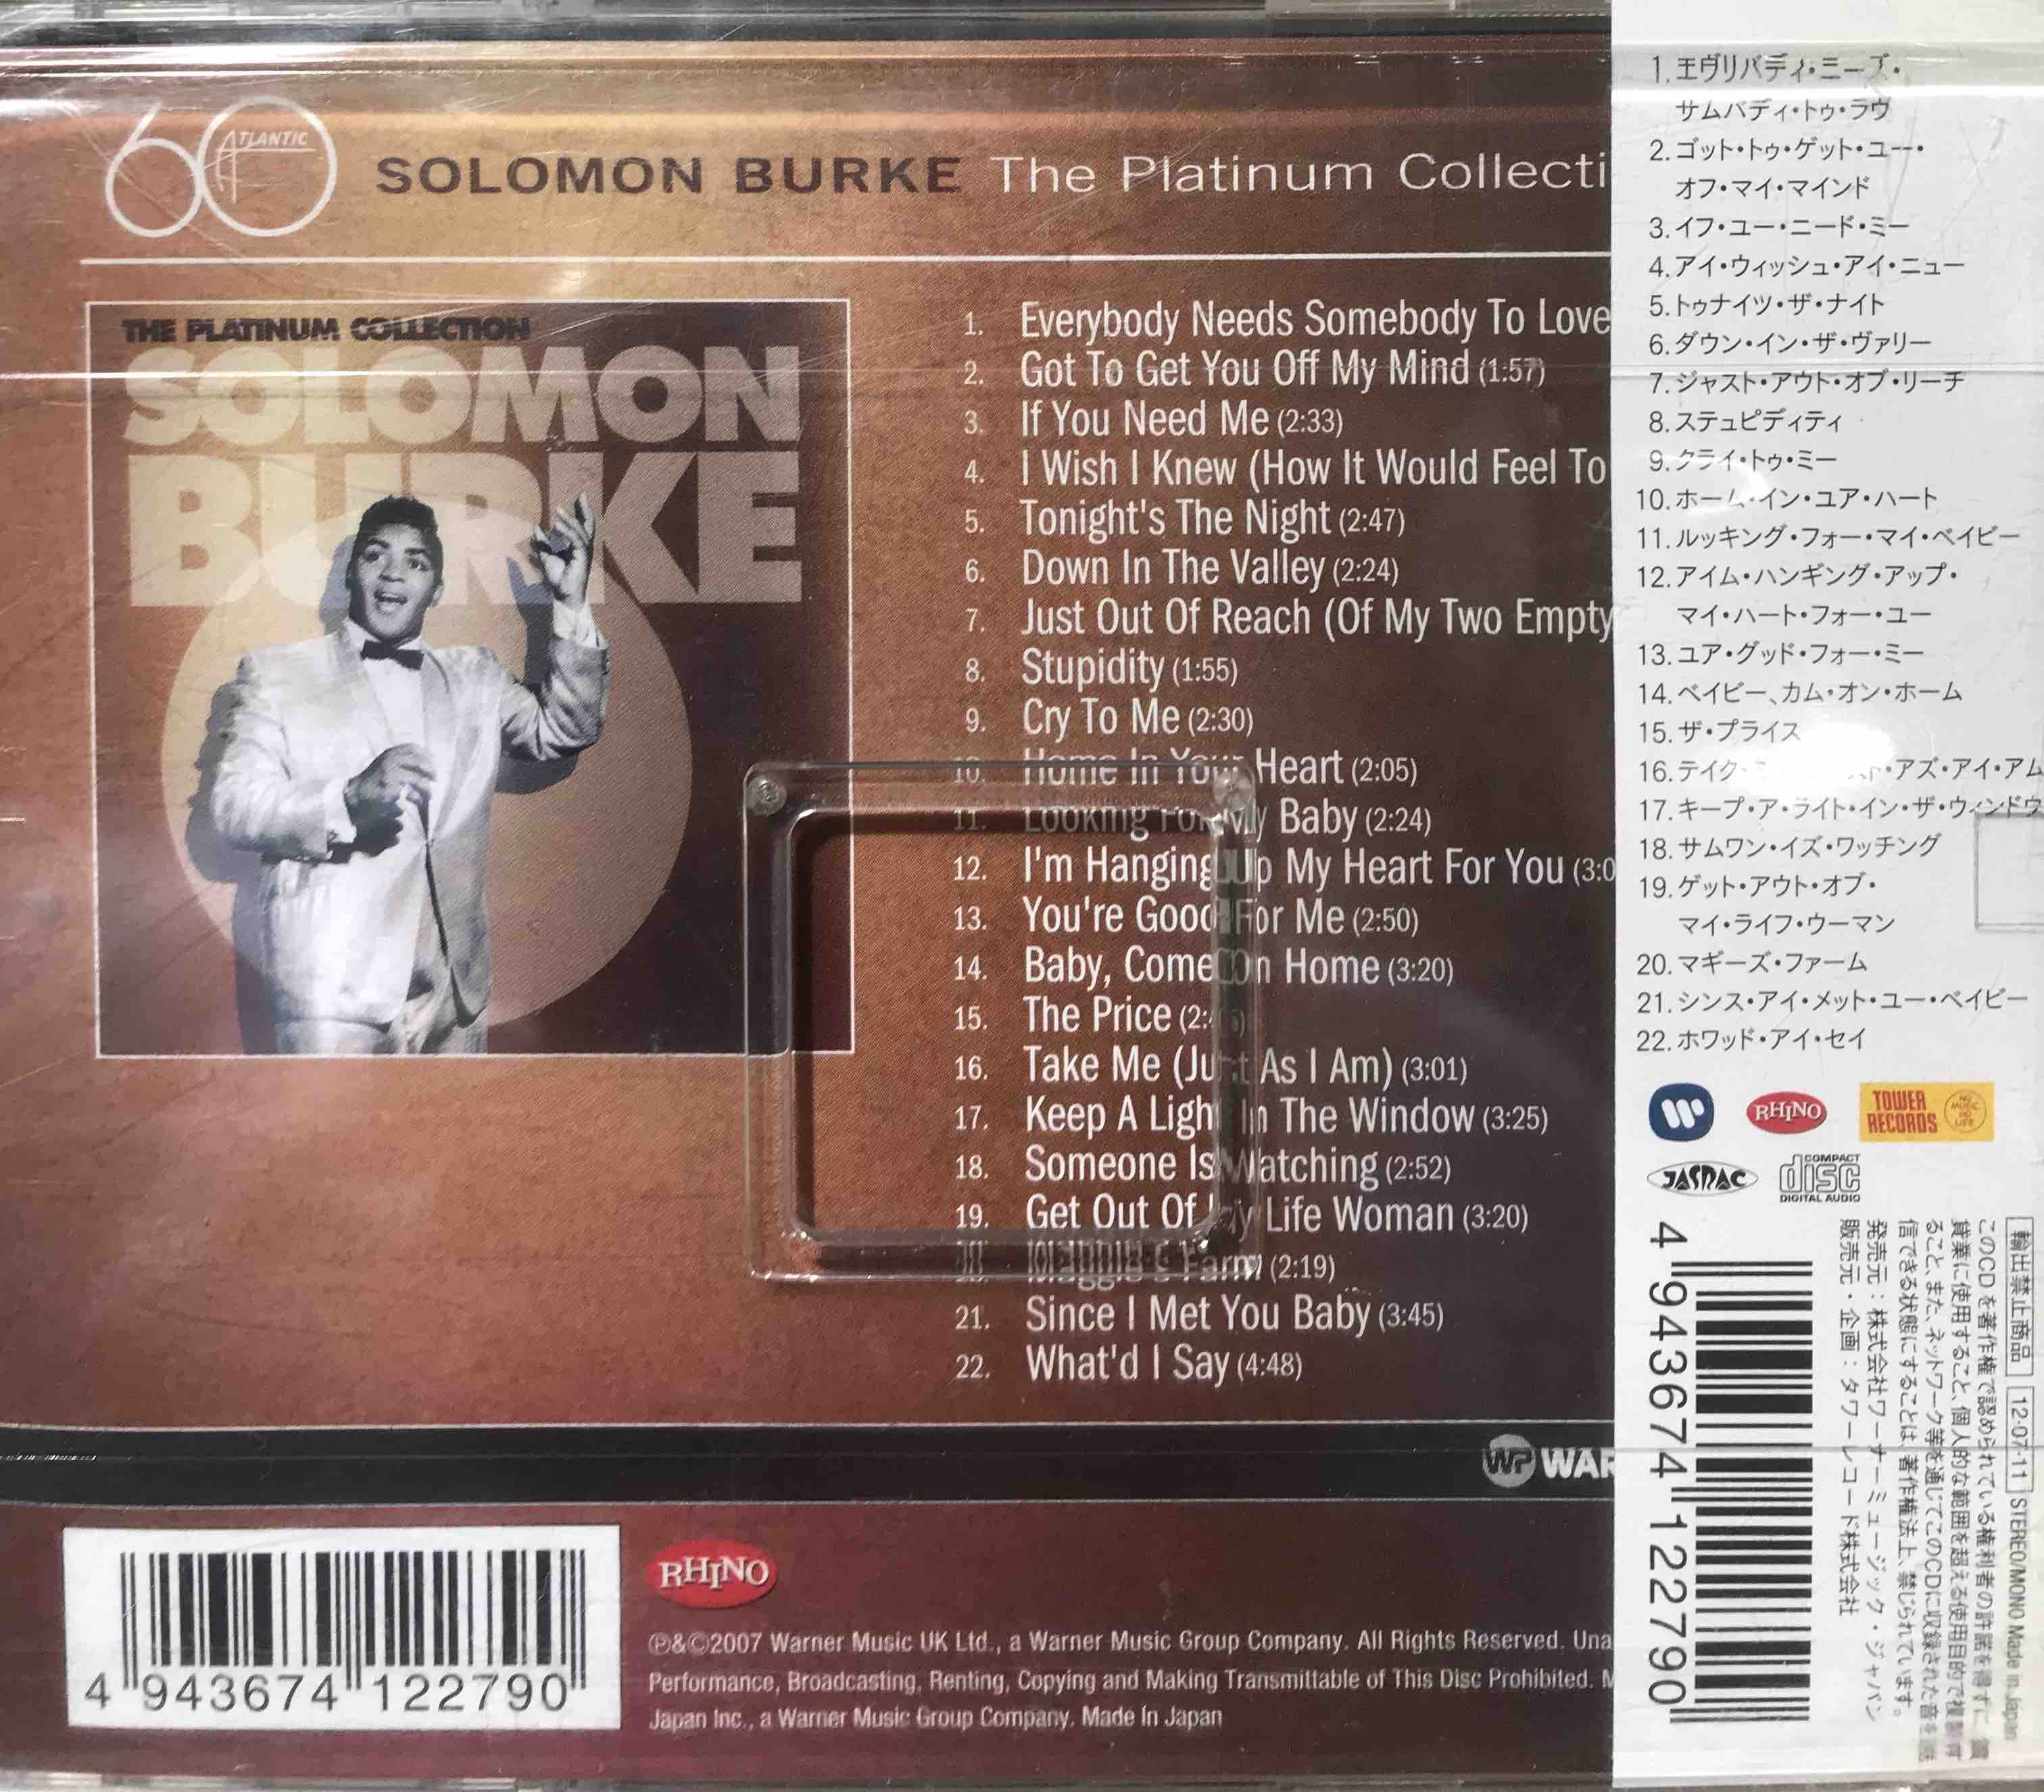 Platinum Collection Solomon Burke